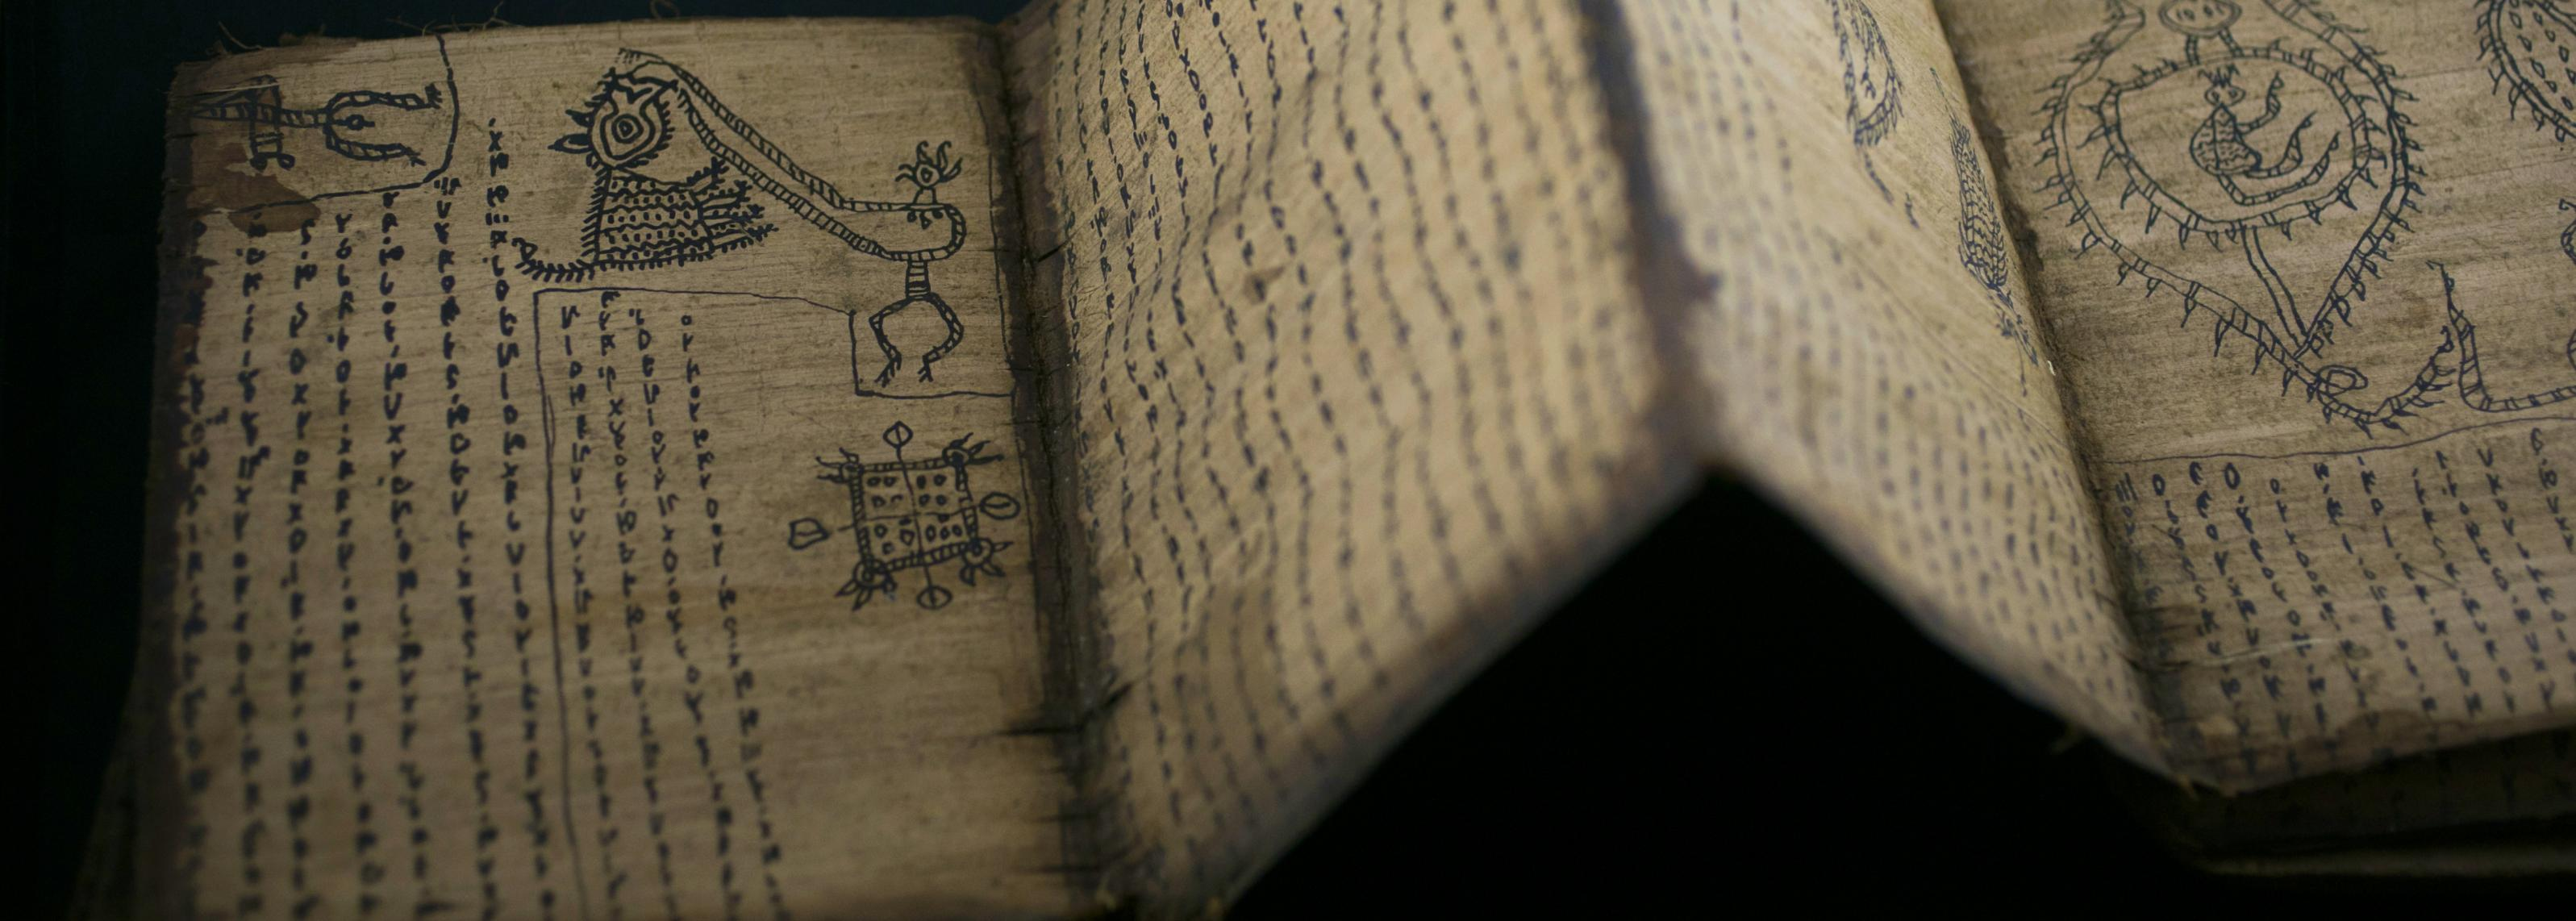 An open book with hand-drawn symbols and illustrations. The pages are folded like an accordion.